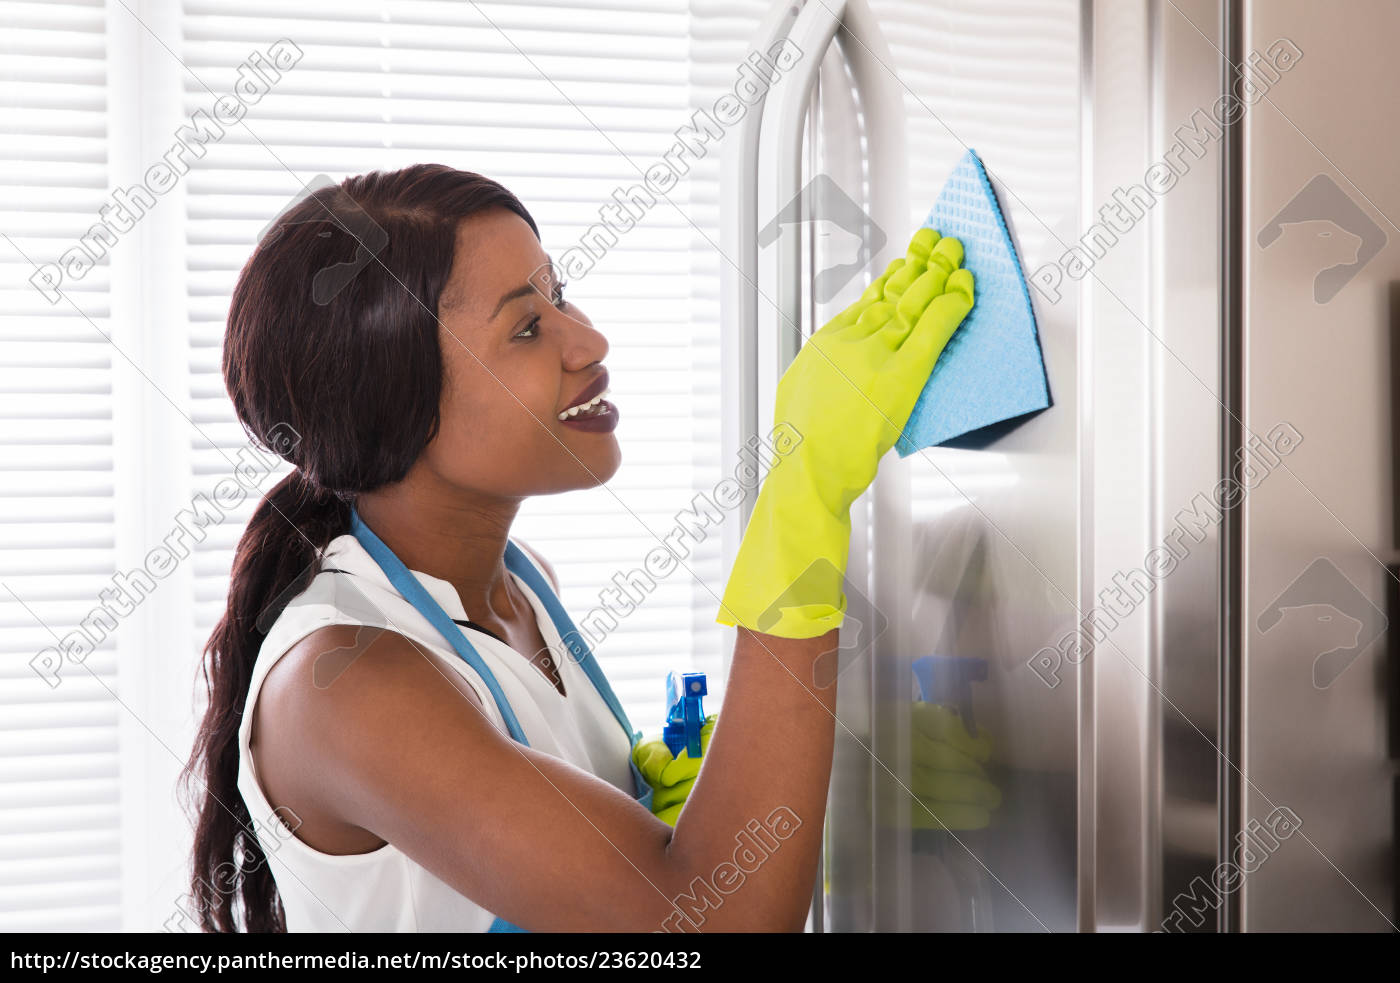 woman, cleaning, her, stainless, steel, refrigerator - 23620432